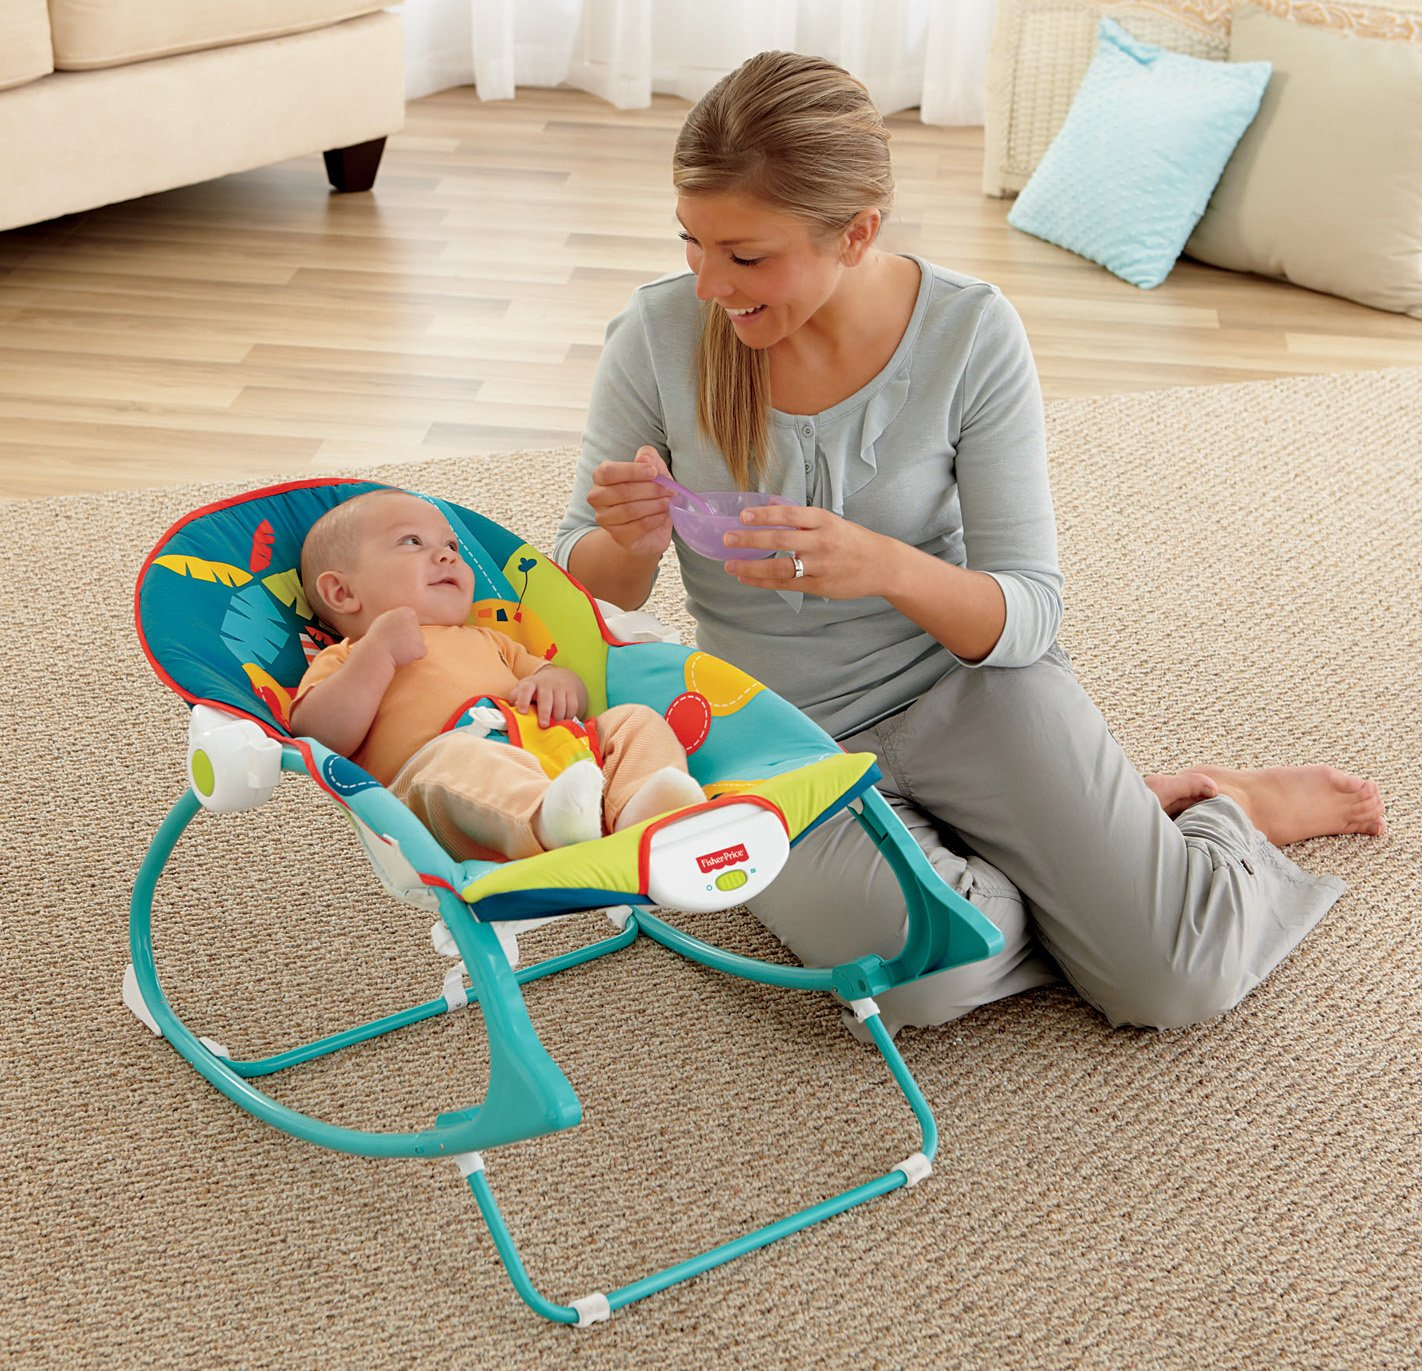 Top 10 Baby Bouncers And Vibrating Chairs Reviews - cover